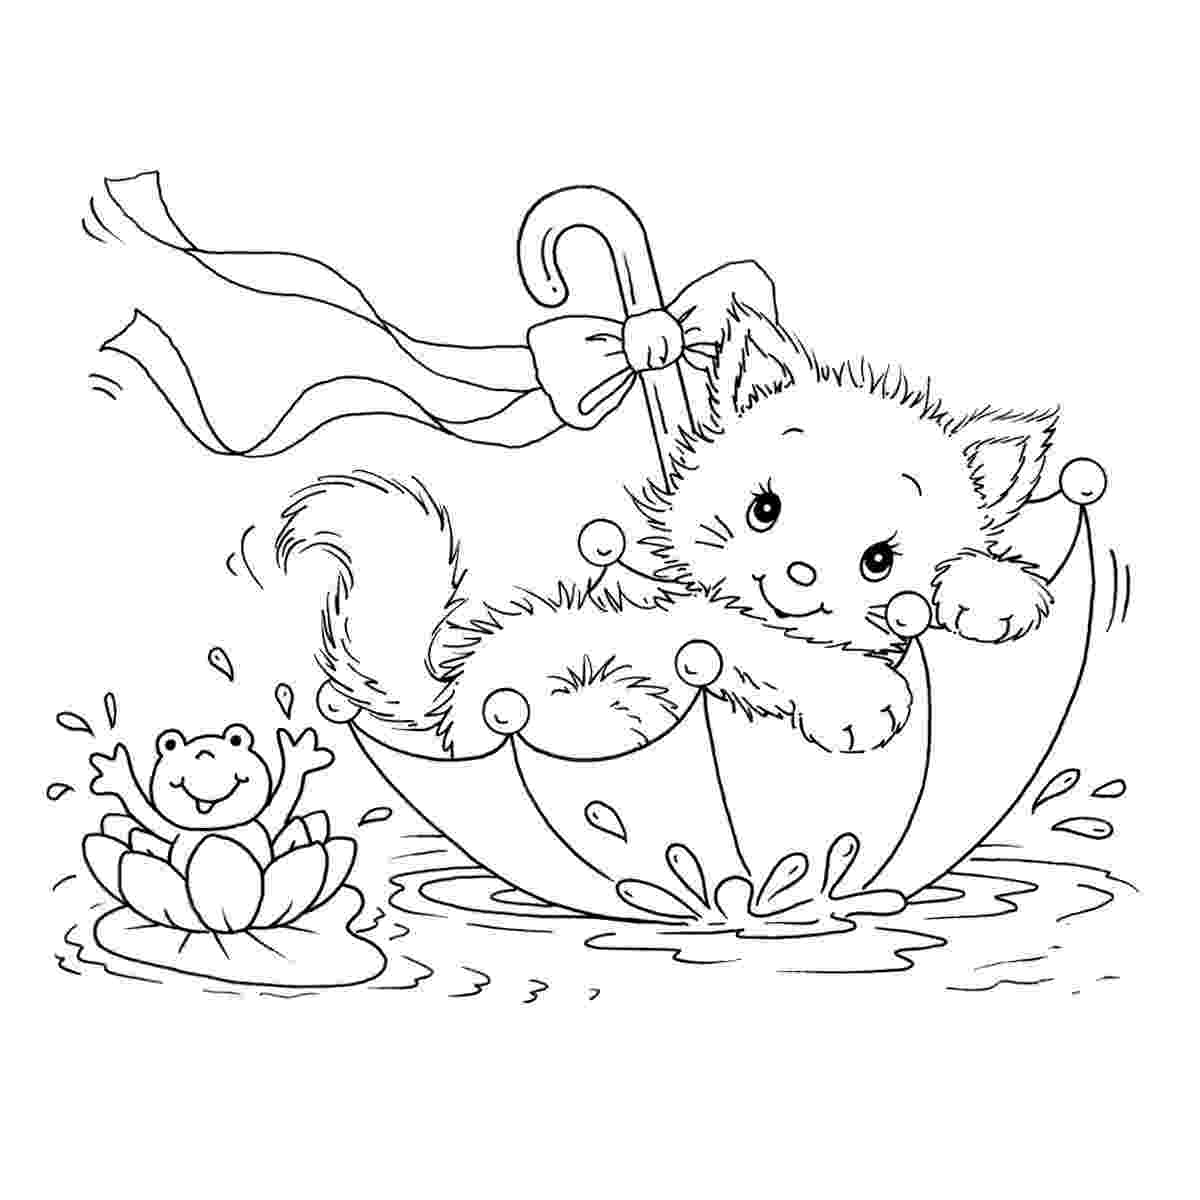 cat coloring pages free printable cat coloring pages for kids coloring pages cat